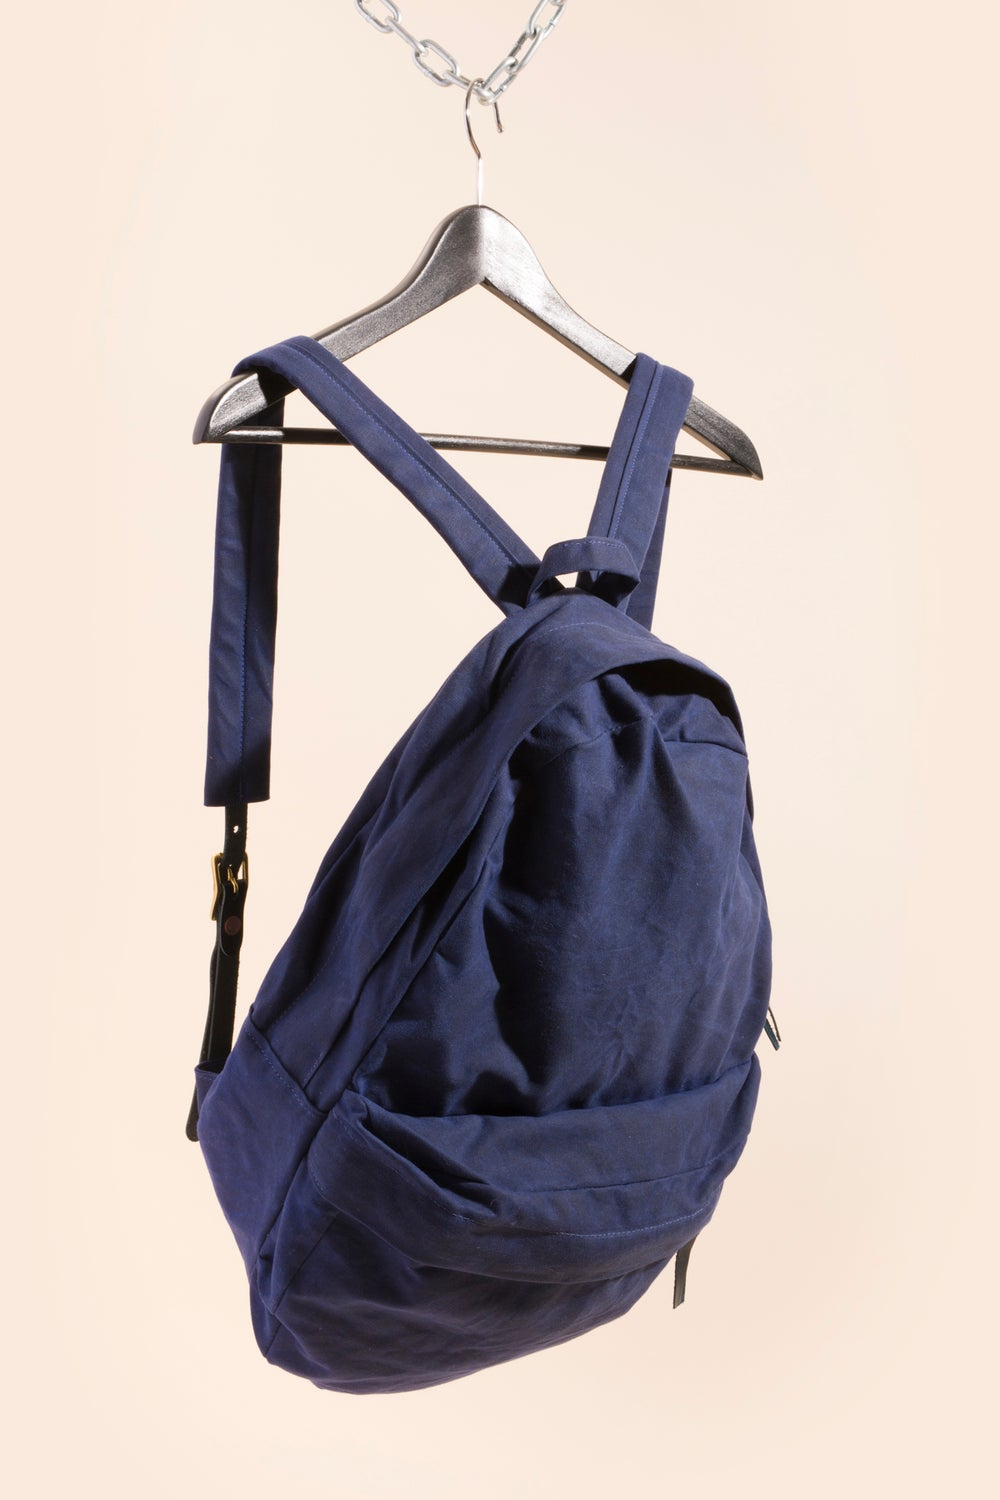 Image of Backpack - Navy Waxed Canvas